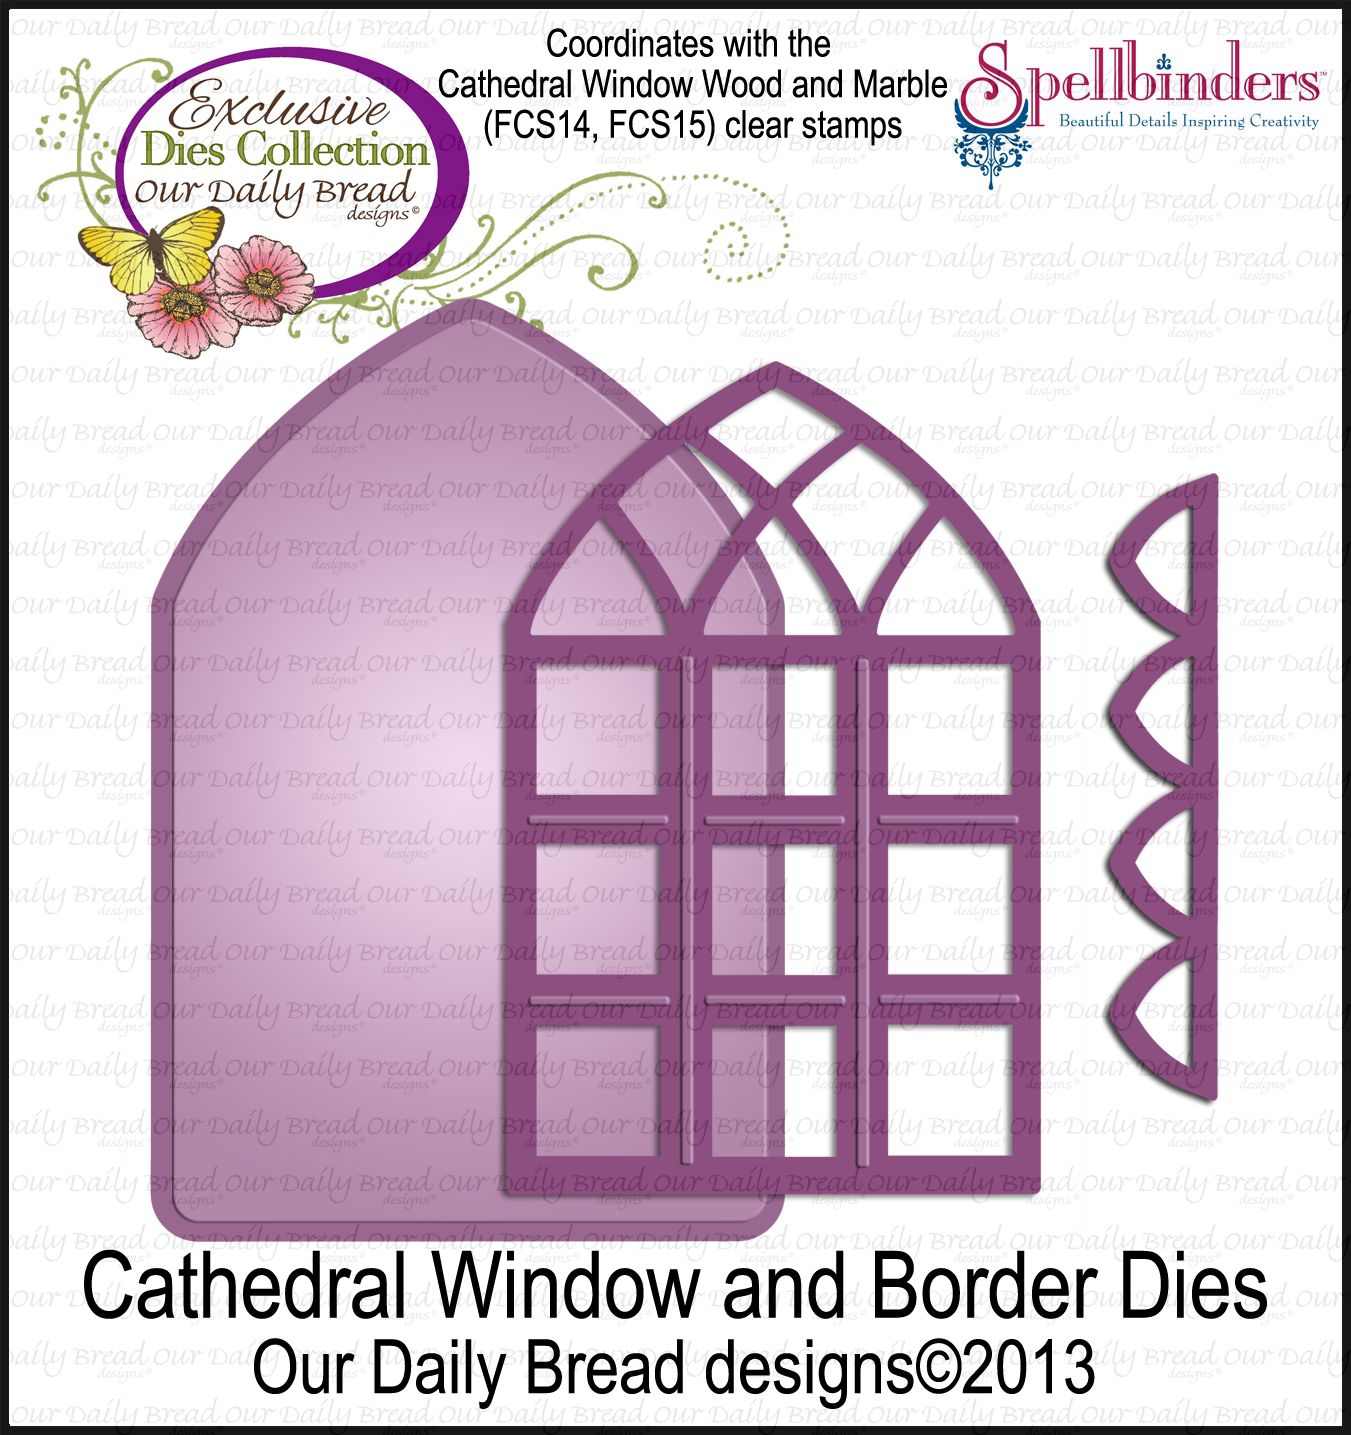 https://www.ourdailybreaddesigns.com/index.php/cathedral-window-border-dies.html